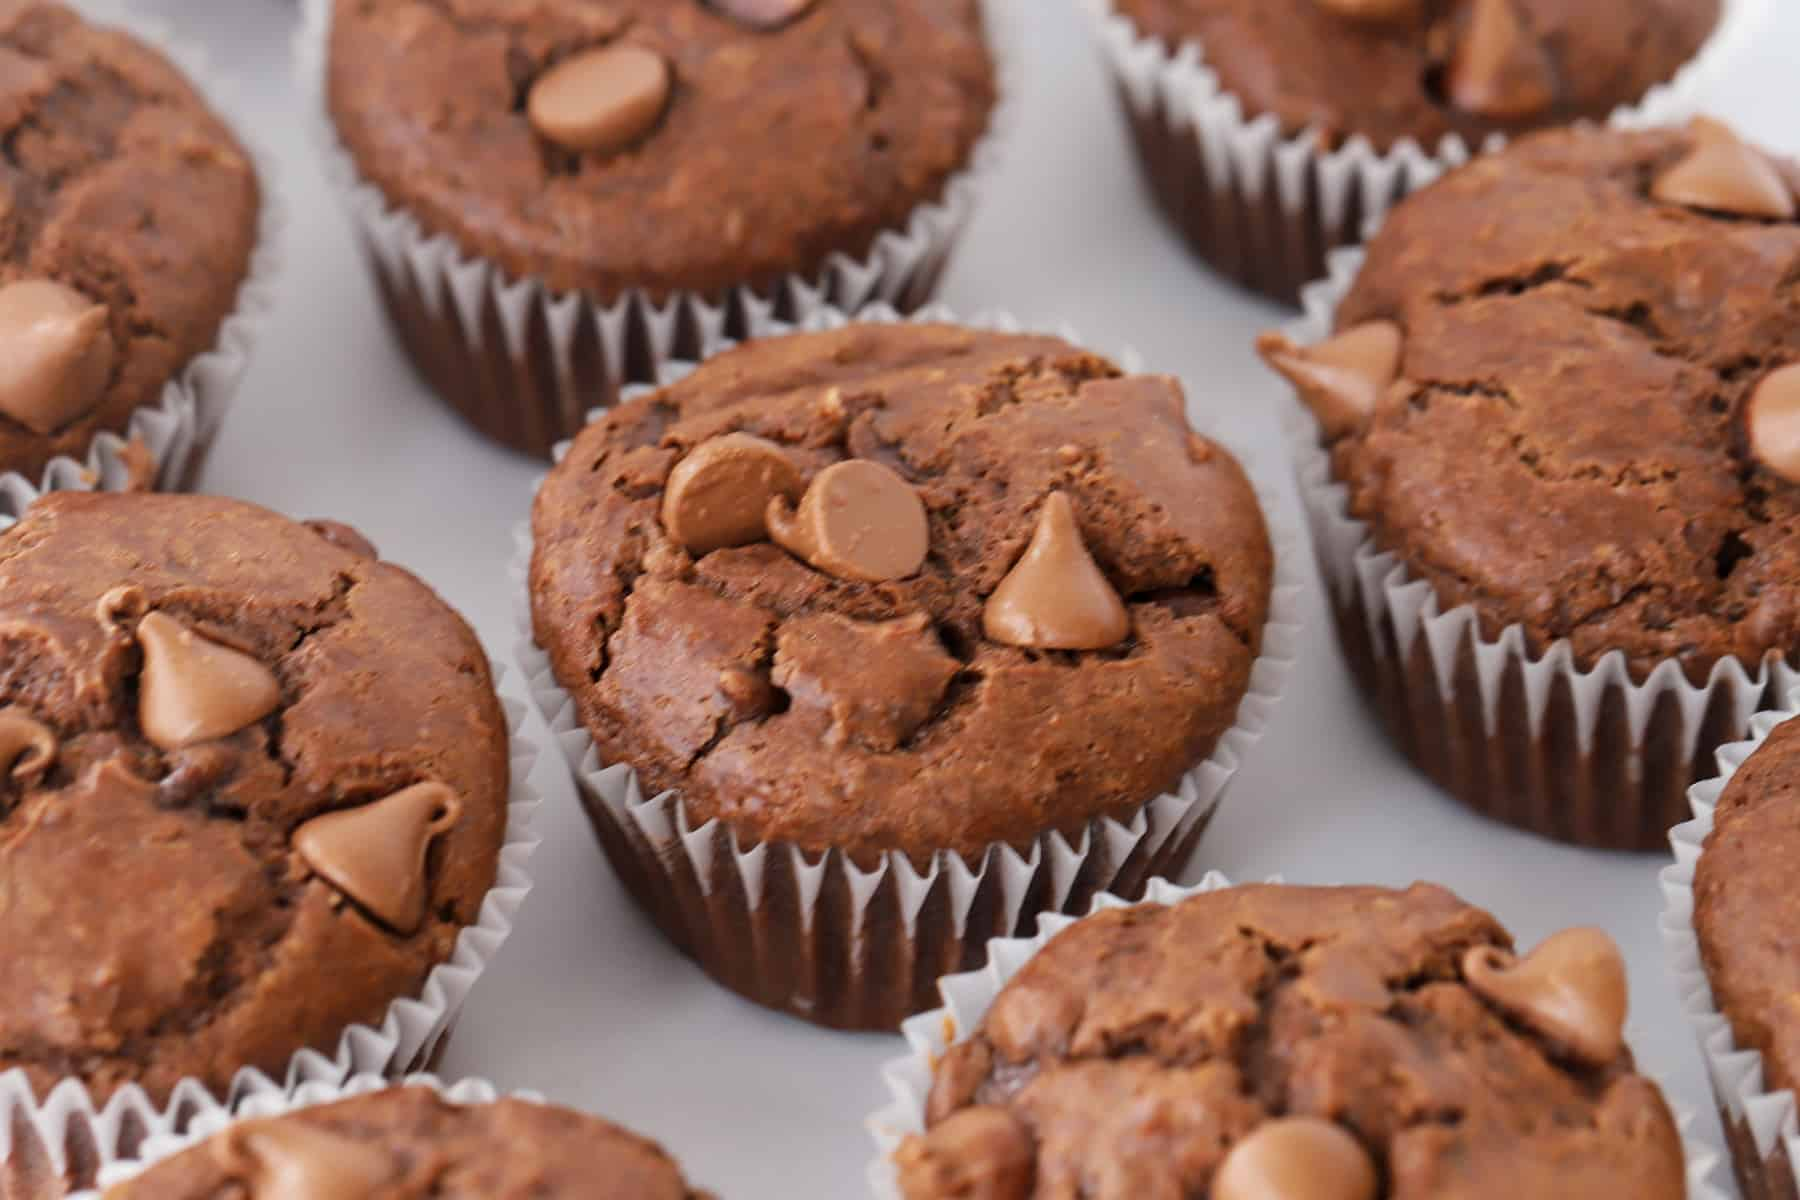 Double Chocolate Chip muffins on a table.